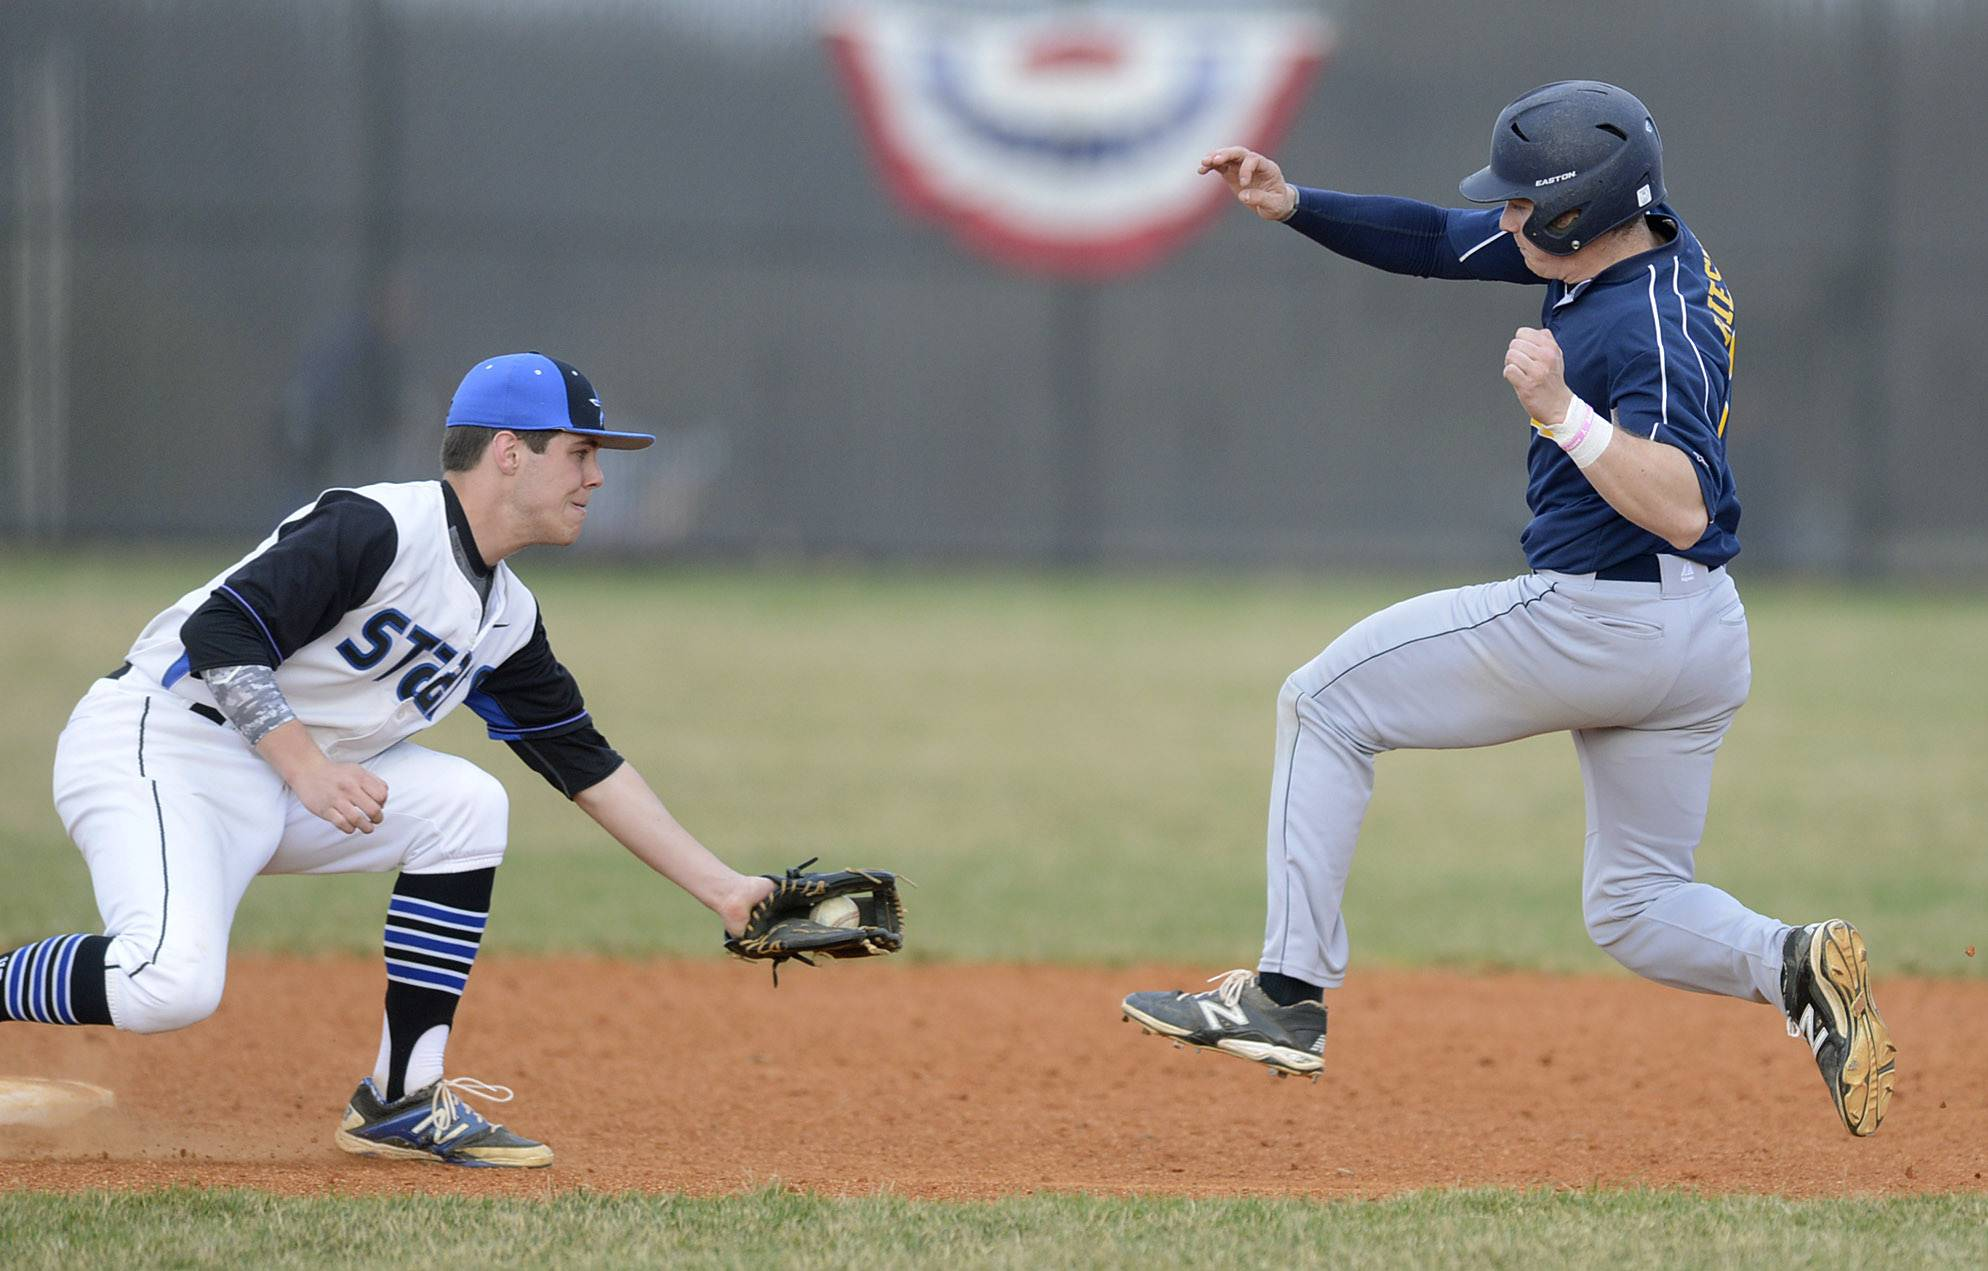 St. Charles North's Zach Mettetal has Neuqua Valley's Mike Riesner out at second base before he reaches the base in the second inning on Friday, April 11.